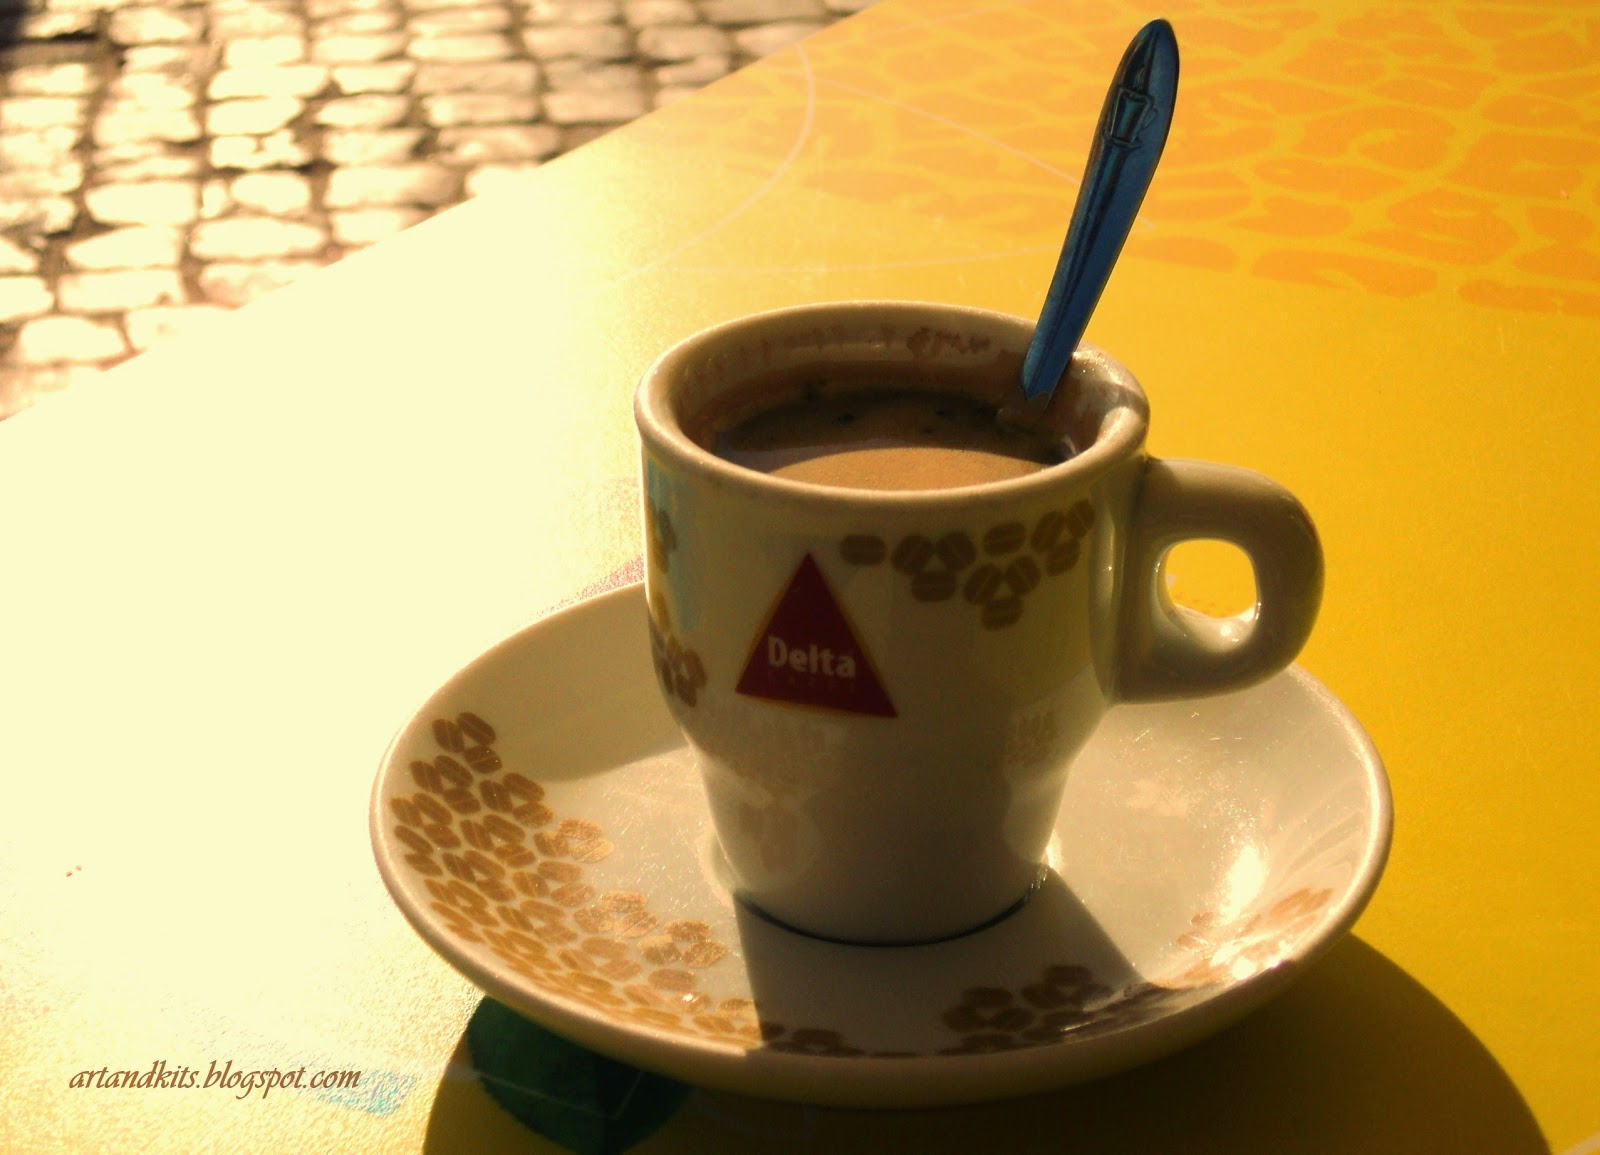 O café, doce ou amargo... tal como a vida... deve ser apreciado, até à última gota, e em boa companhia, de preferência... tal como a vida... E tal como a vida... serve-se quente, e com um sabor intenso. Talvez seja por isso, que a vida sempre começa... depois de um bom café... / The coffee, bitter or sweet... as life itself... must be enjoyed, to the last drop, and in good company, if possible... as life itself... And as life itself... must be served hot, and with an intense flavor. Perhaps that is why, life always seems to begin... after a good cup of coffee...